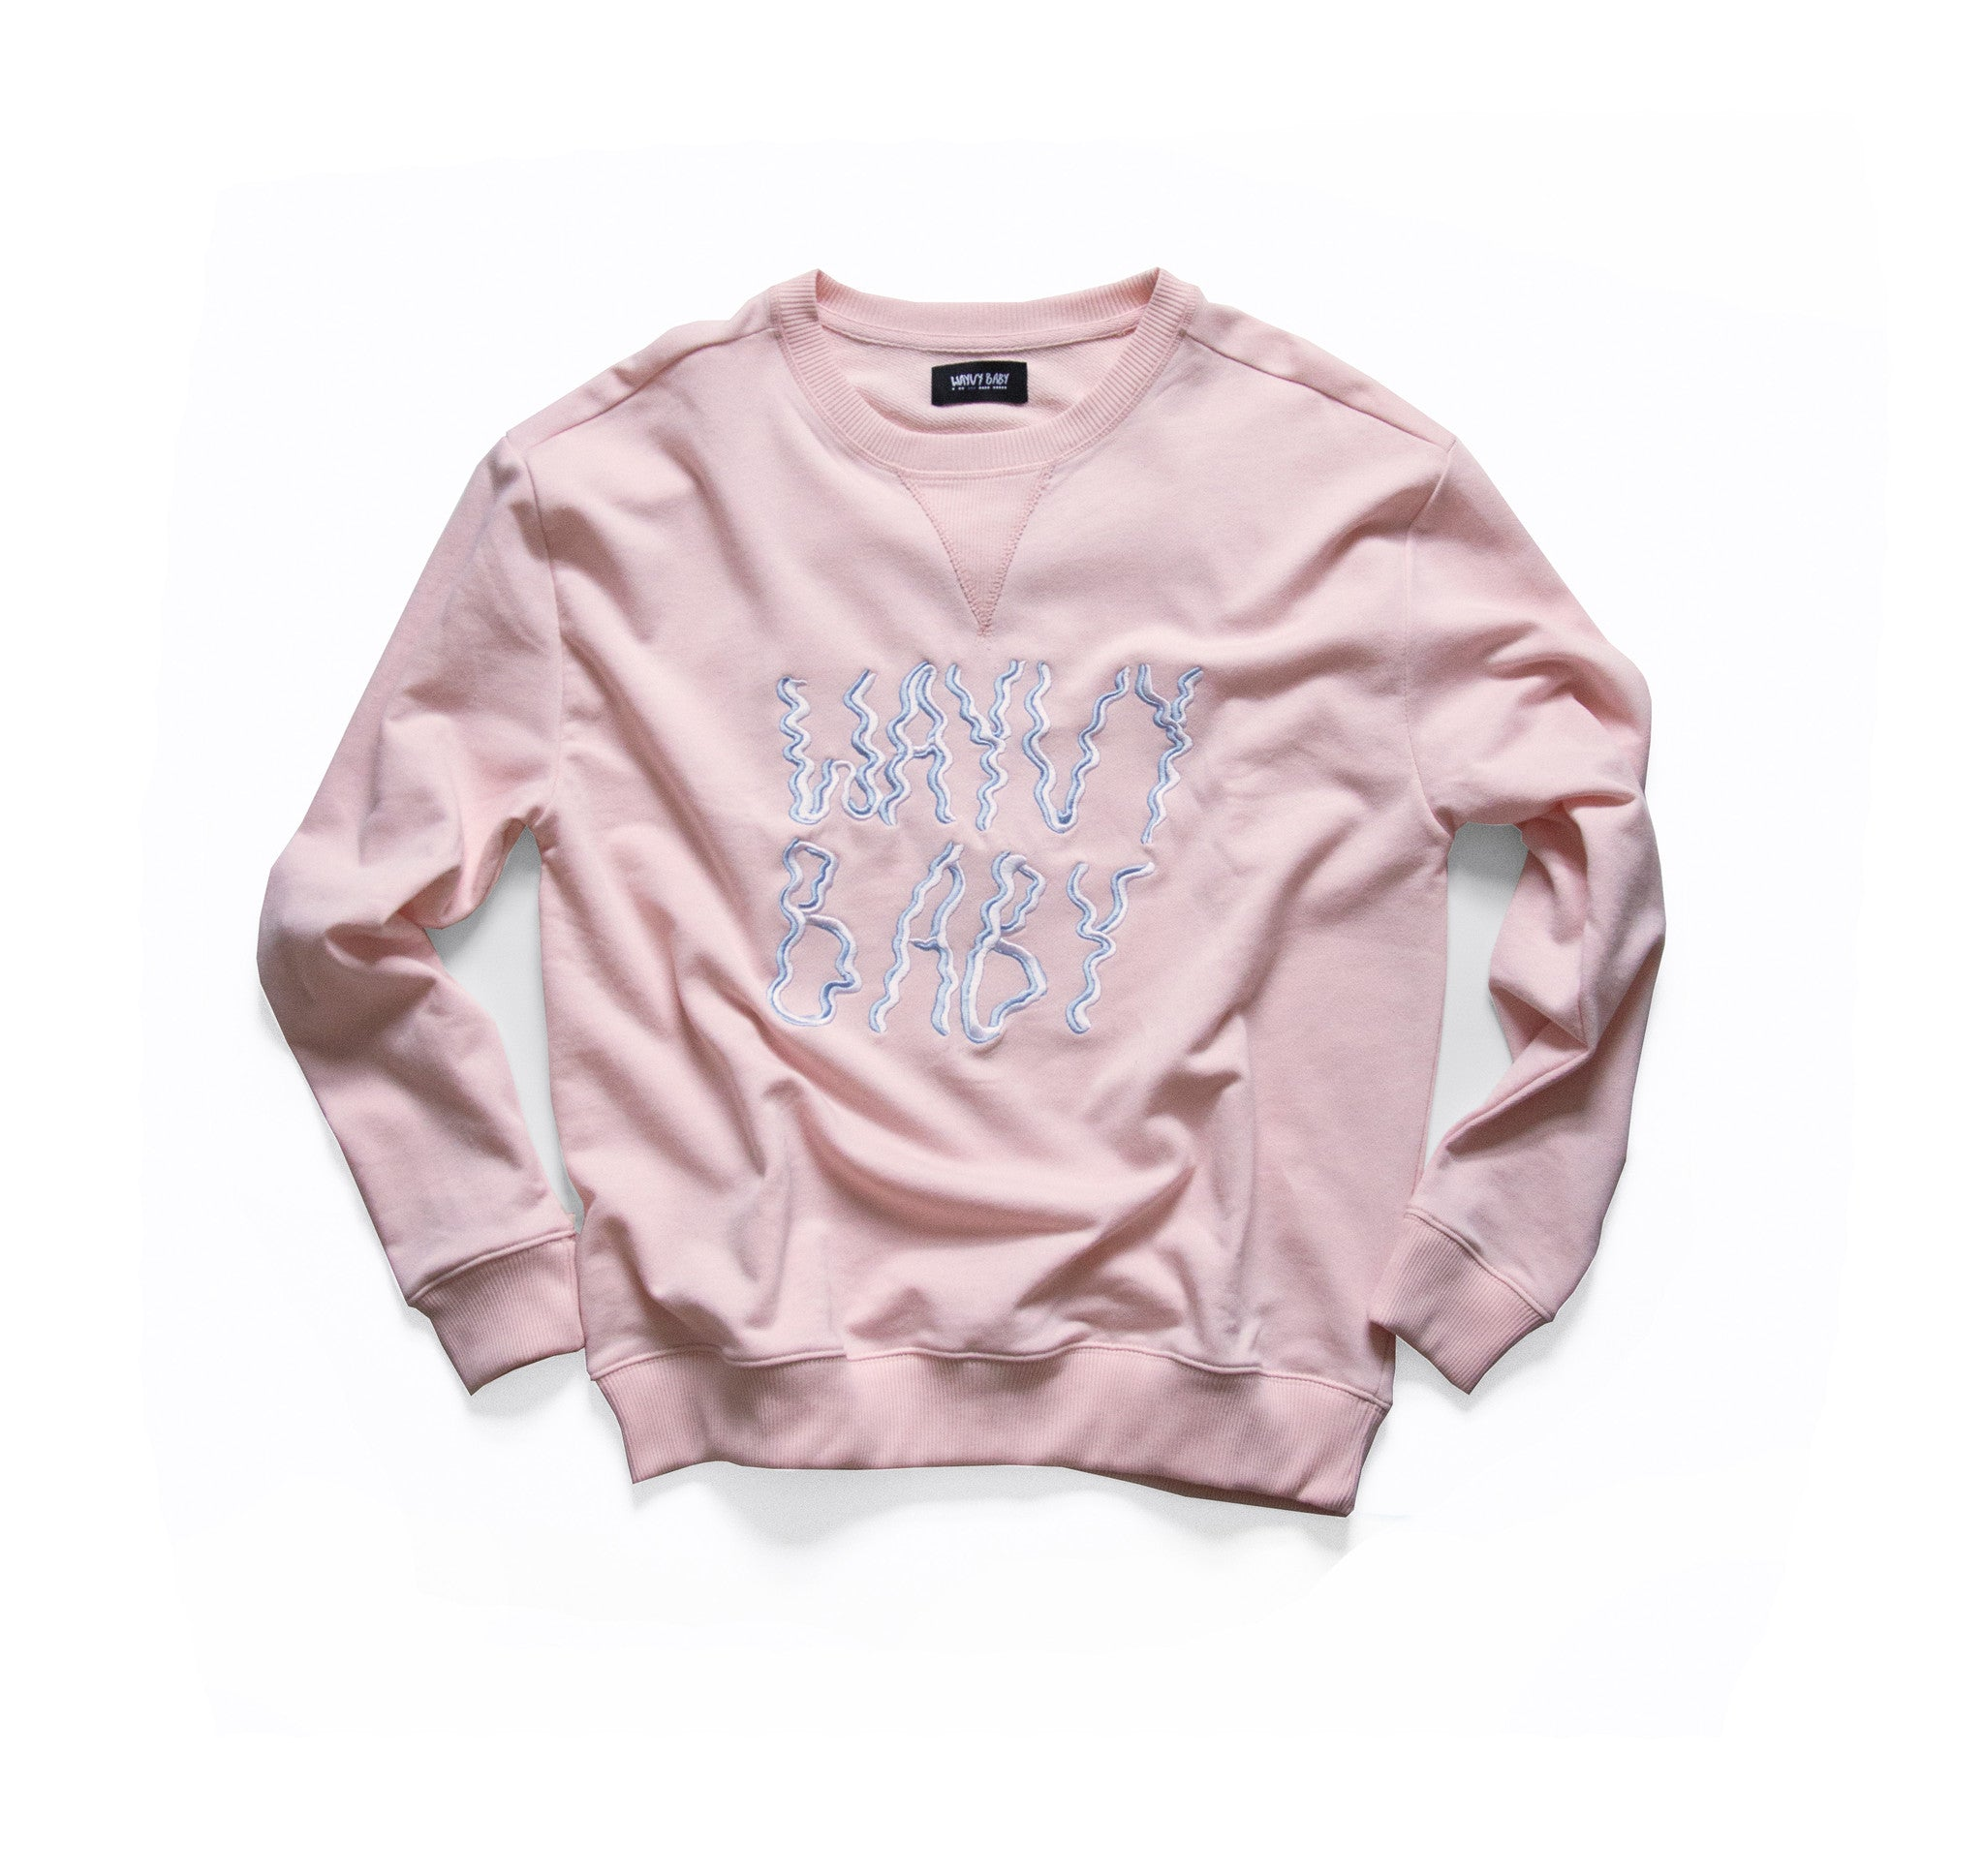 """NEEDLEPOINT"" - ROSE QUARTZ - CREWNECK"